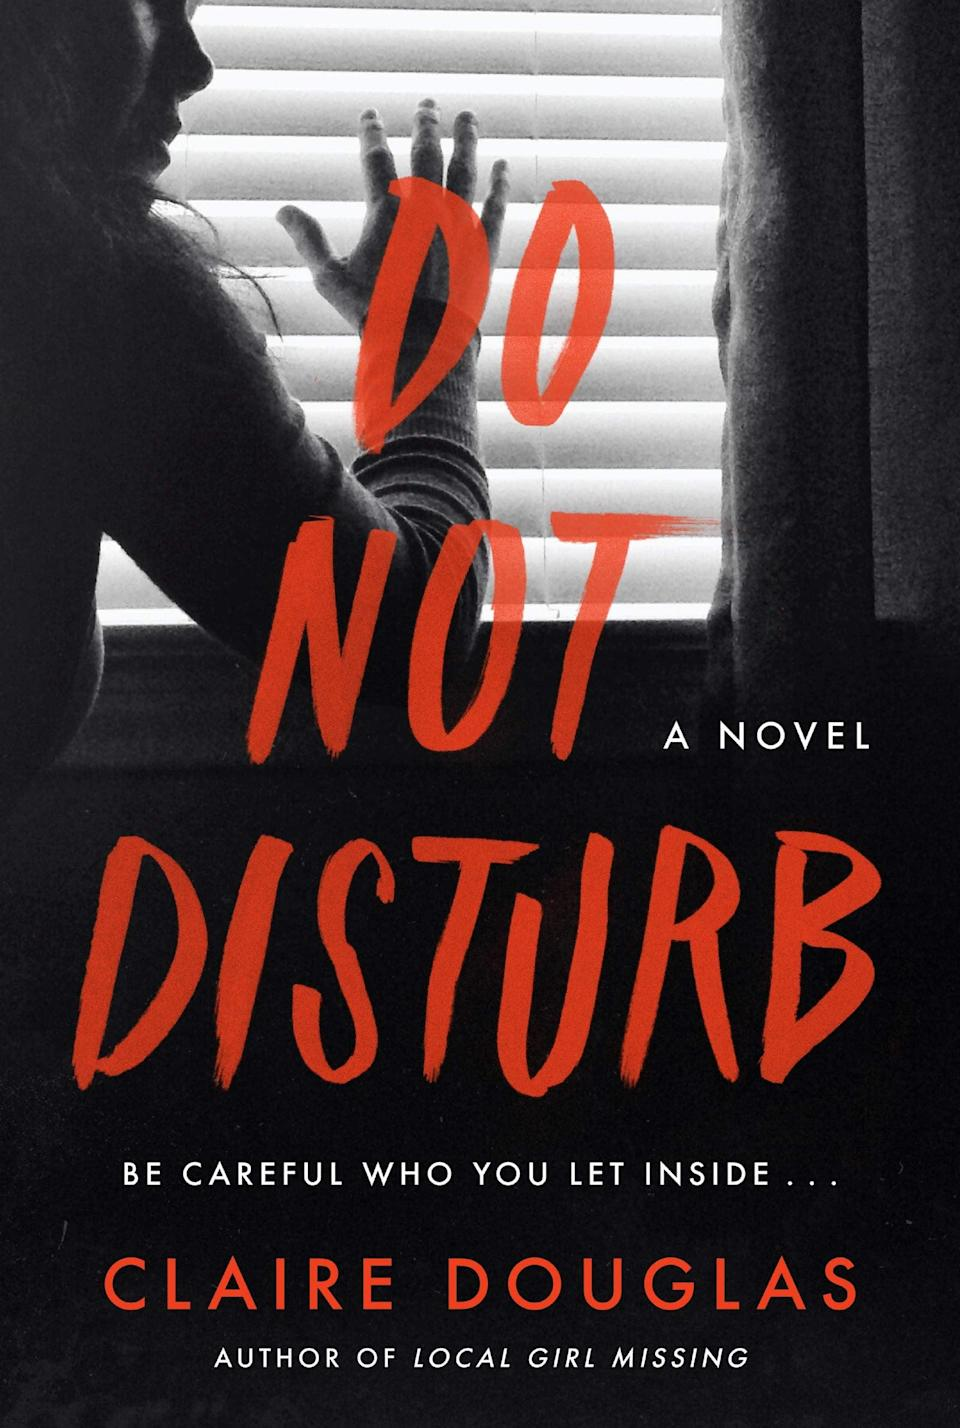 <p>Claire Douglas is a true must-read thriller author, and her latest, <span><strong>Do Not Disturb</strong></span>, is yet another reminder of just how good she is at putting the reader on the edge of their seat and keeping them there until the final page. Kirsty Woodhouse moves her family to Wales in hopes of escaping the trauma they experienced in London, but when her troublemaking cousin walks back into her life after 17 years, Kristy realizes Wales isn't the safe haven she hoped it would be. </p> <p><em>Out Nov. 17</em></p>